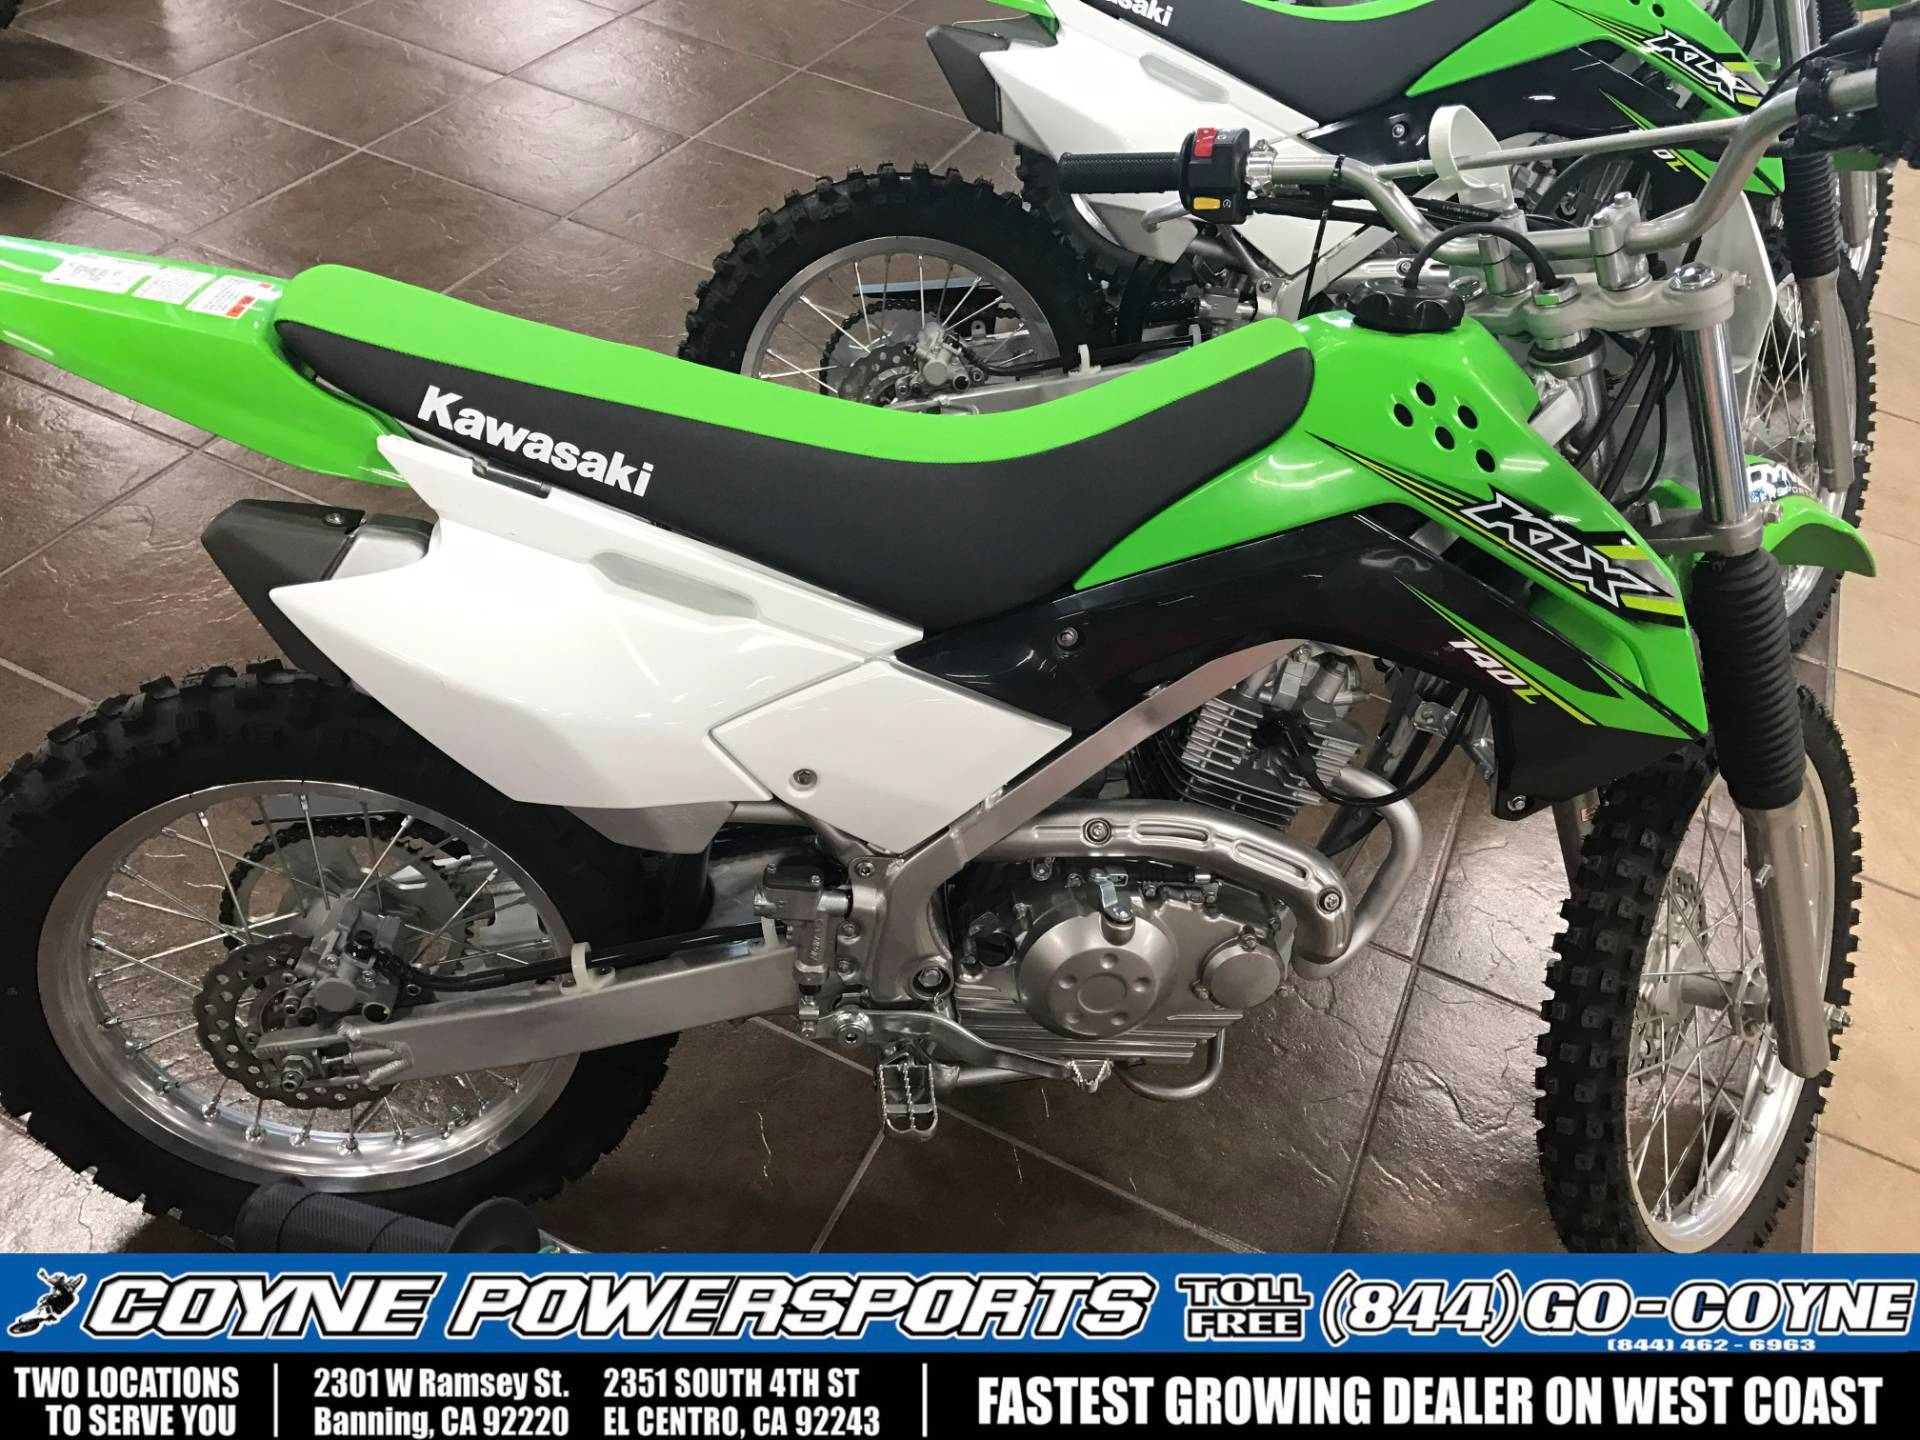 2017 Kawasaki KLX140L for sale 62